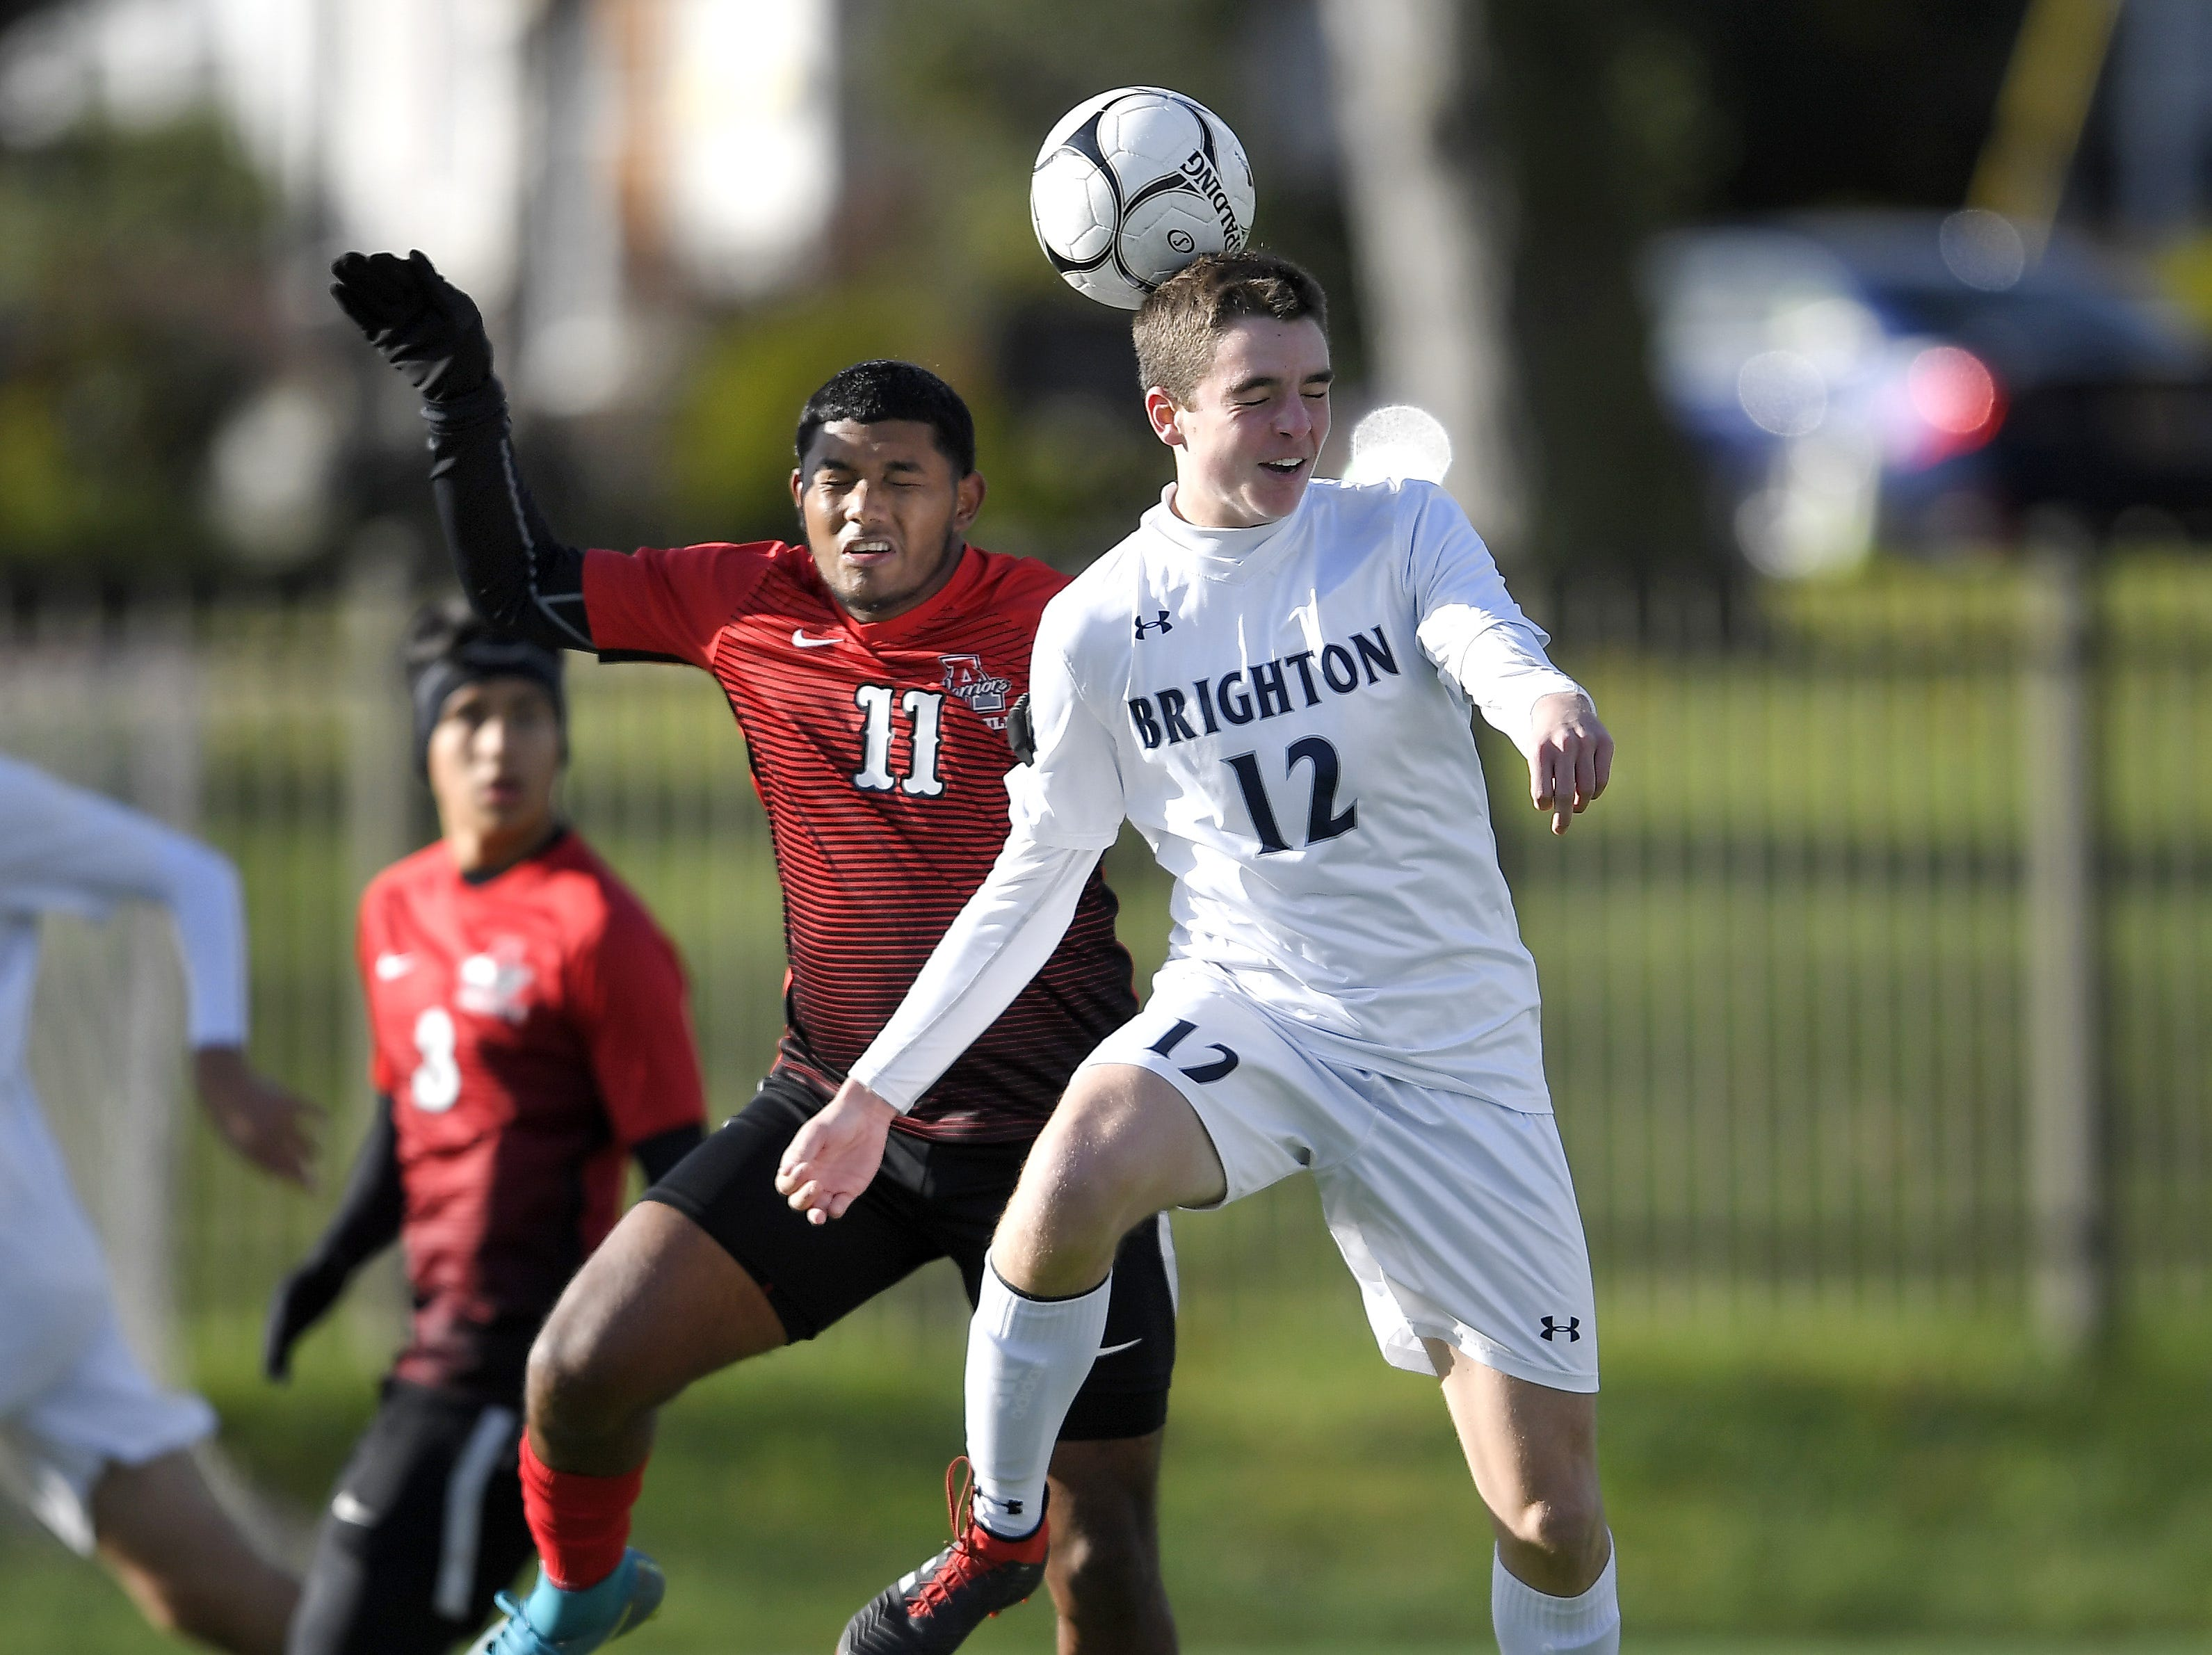 Brighton's Connor McQuillan, right, wins a header in front of Amityville's Deiby Ortega during a Class A semifinal at the NYSPHSAA Boys Soccer Championships in Newburgh, N.Y., Saturday, Nov. 10, 2018. Brighton's season ended with a 2-0 loss to Amityville-XI.